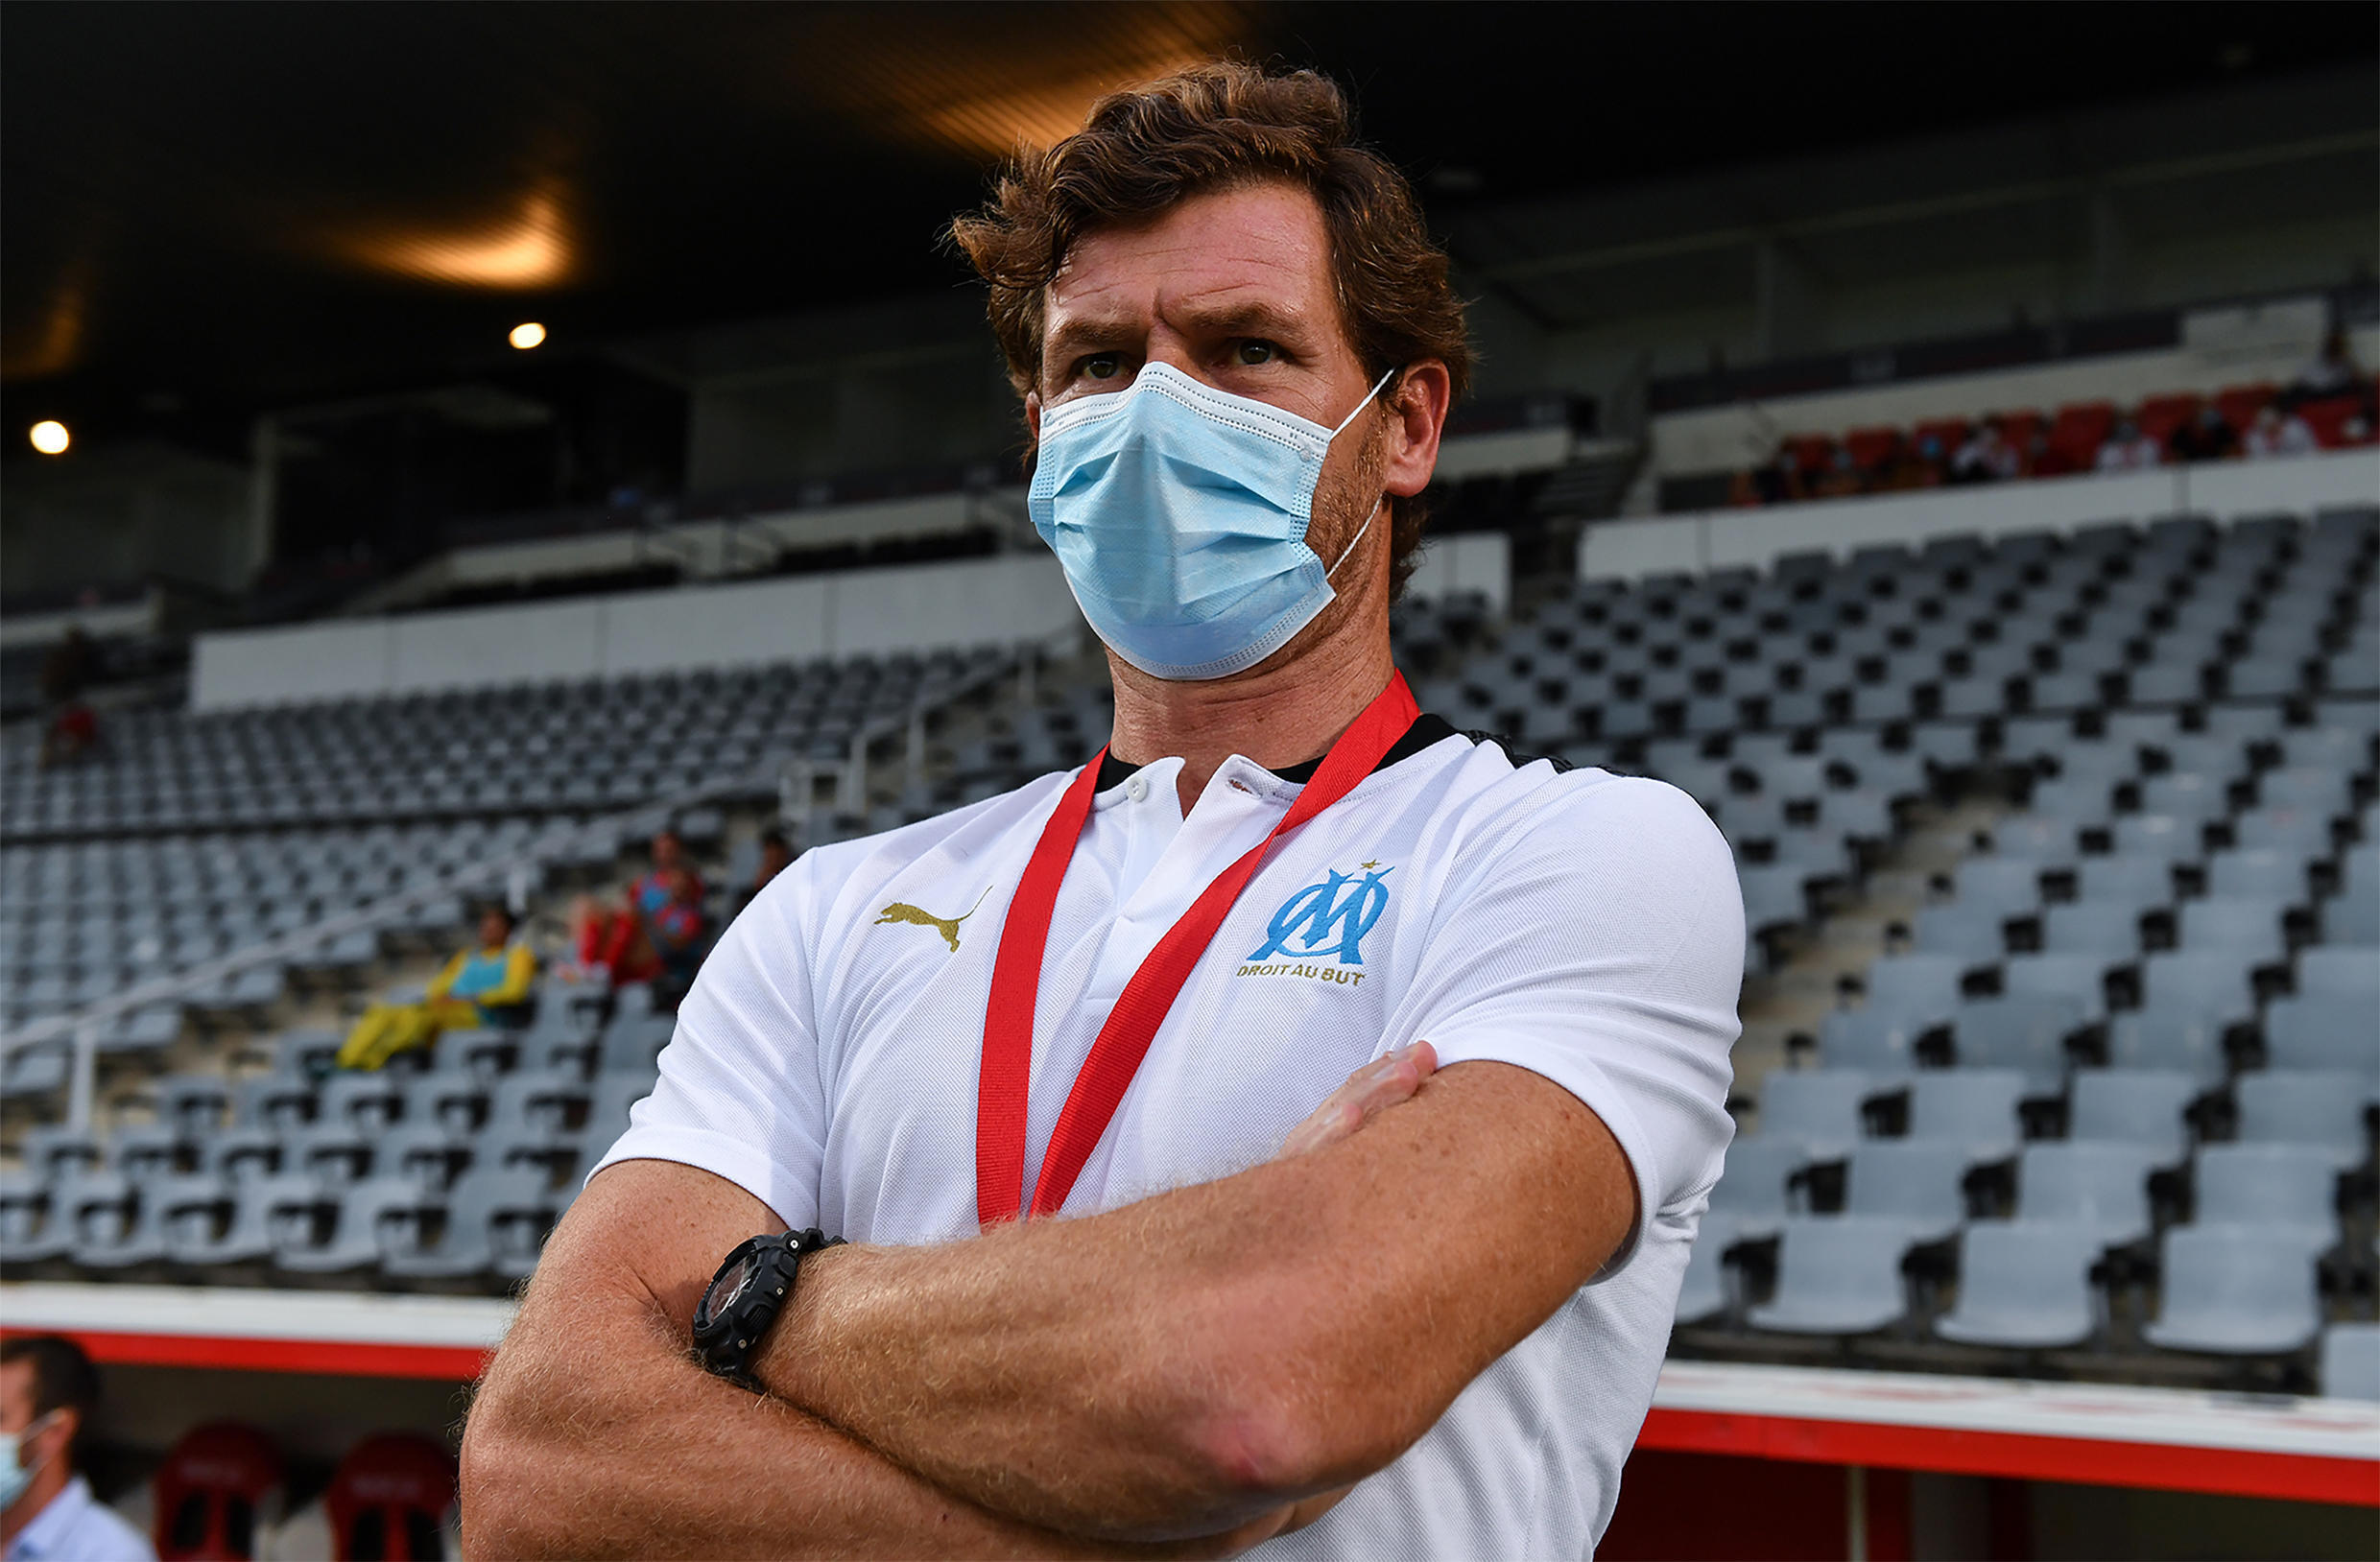 Andre Villas Boas led Marseille to second place in Ligue 1 in 2020.